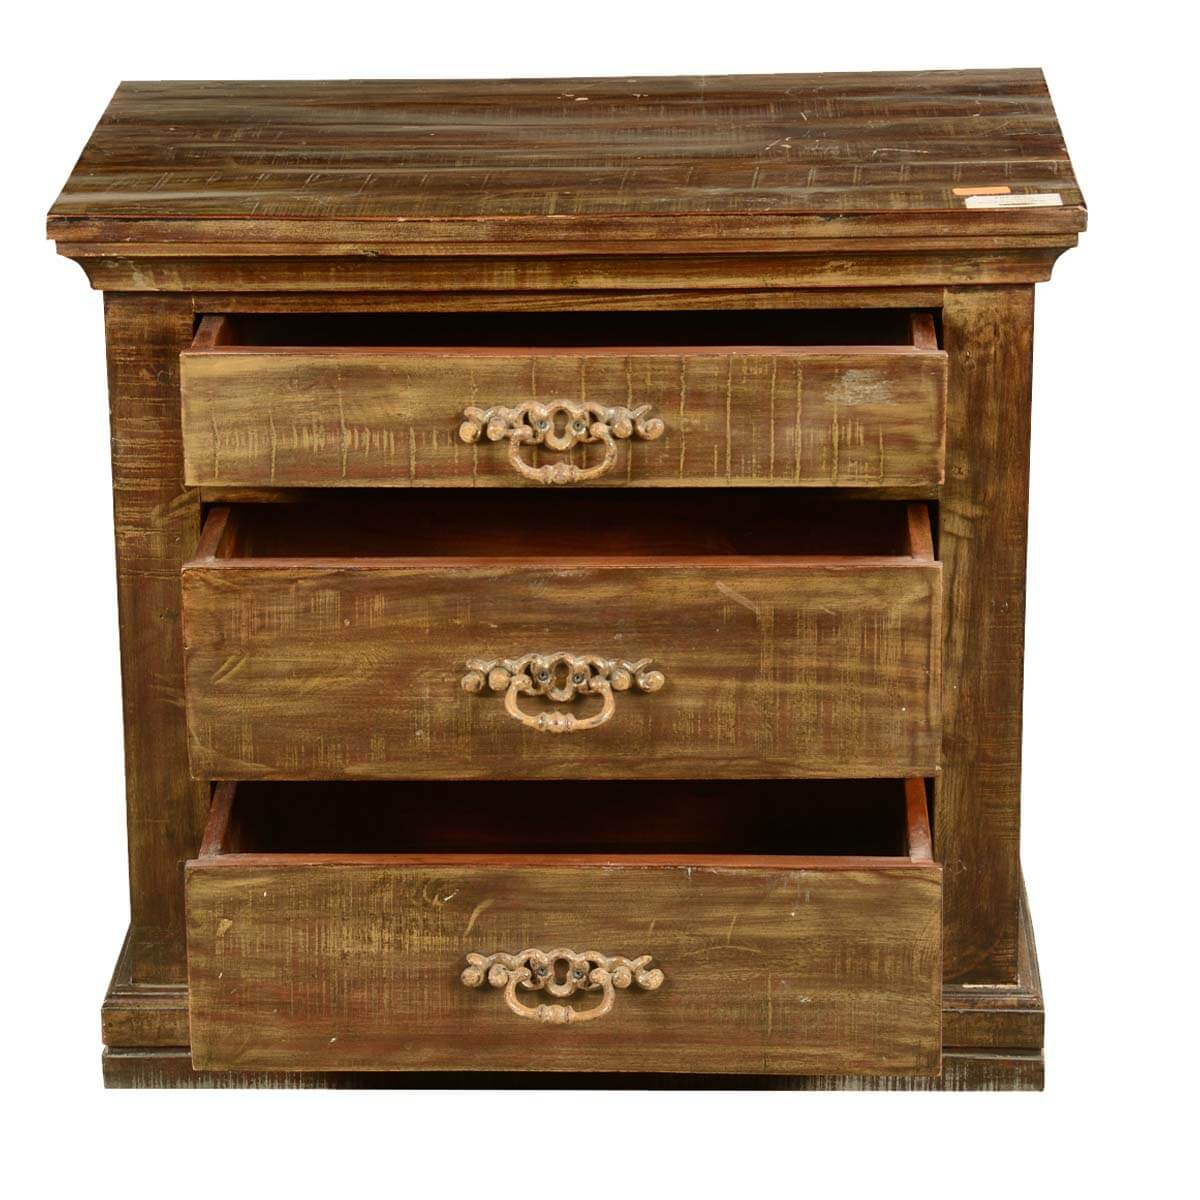 End table with drawer - English Gentleman S Chest Reclaimed Wood 3 Drawer End Table